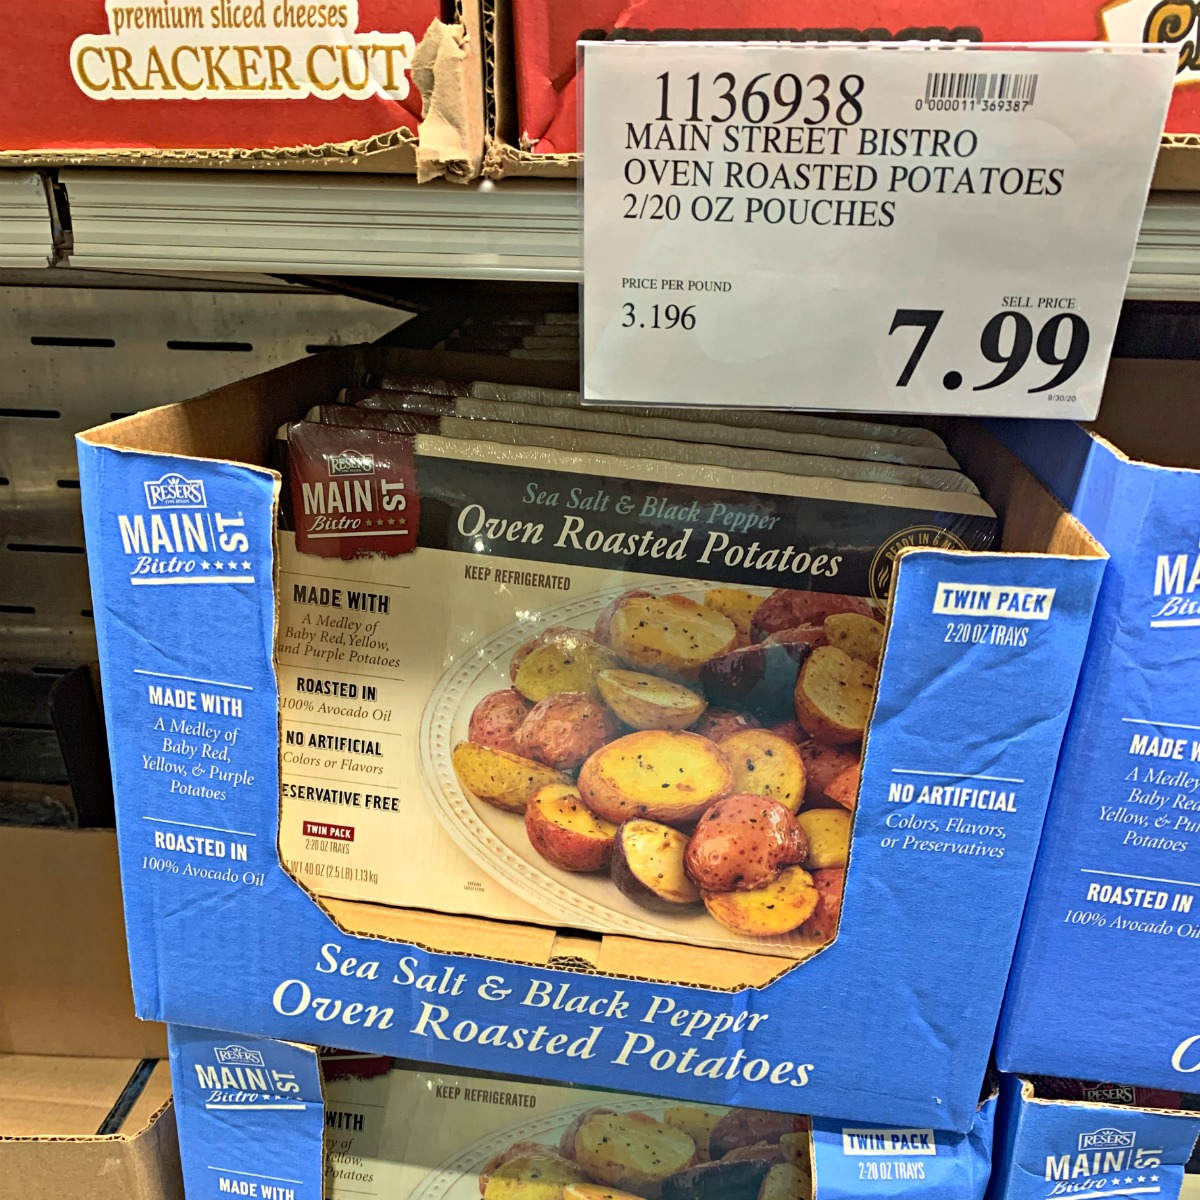 oven roasted potatoes in a container at Costco